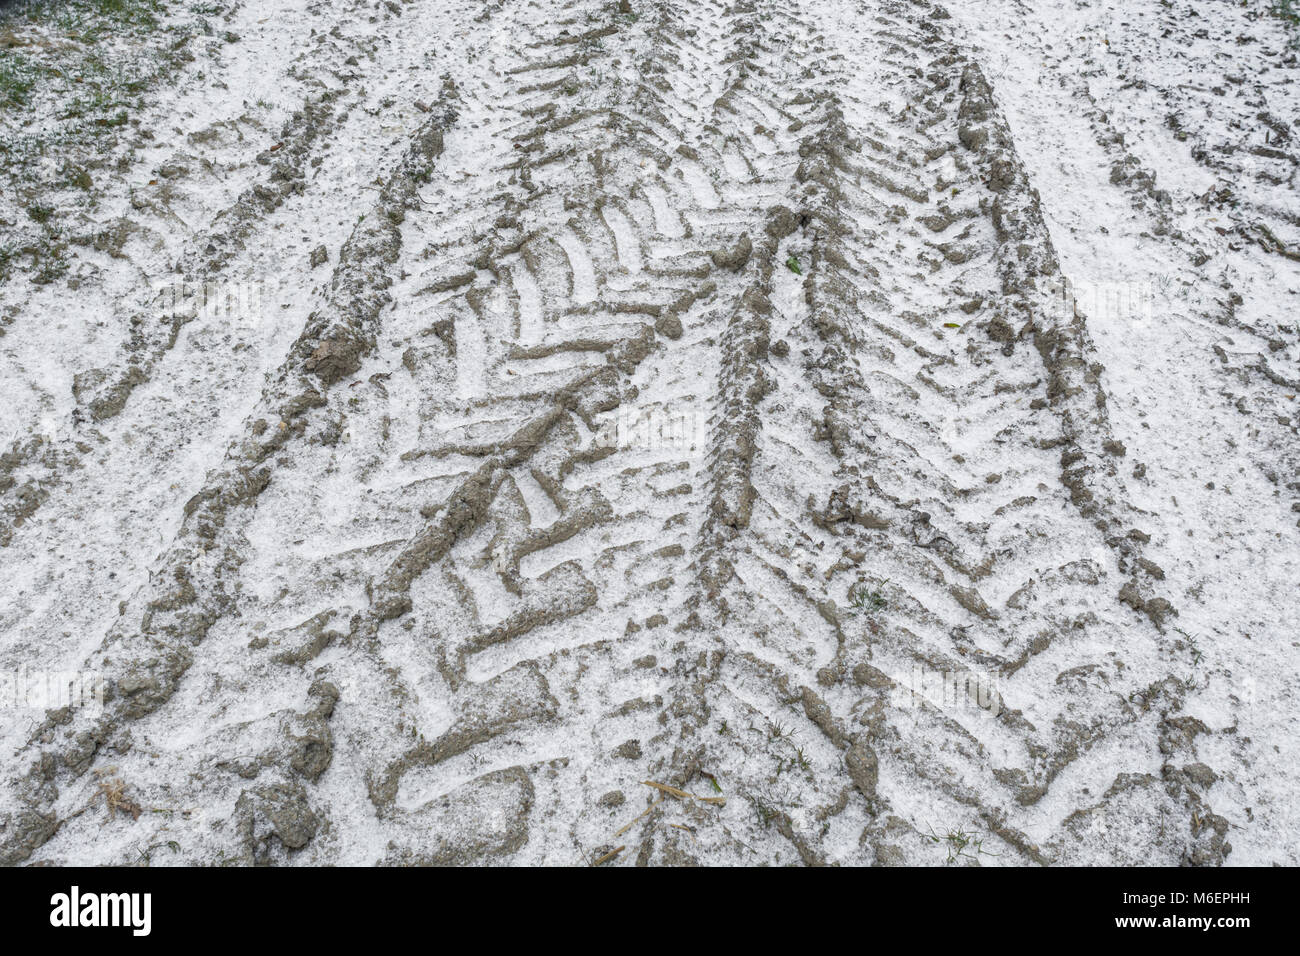 Snow covered tractor tracks during 'Beast from the East' - potential for disrupting farming and agriculture. - Stock Image